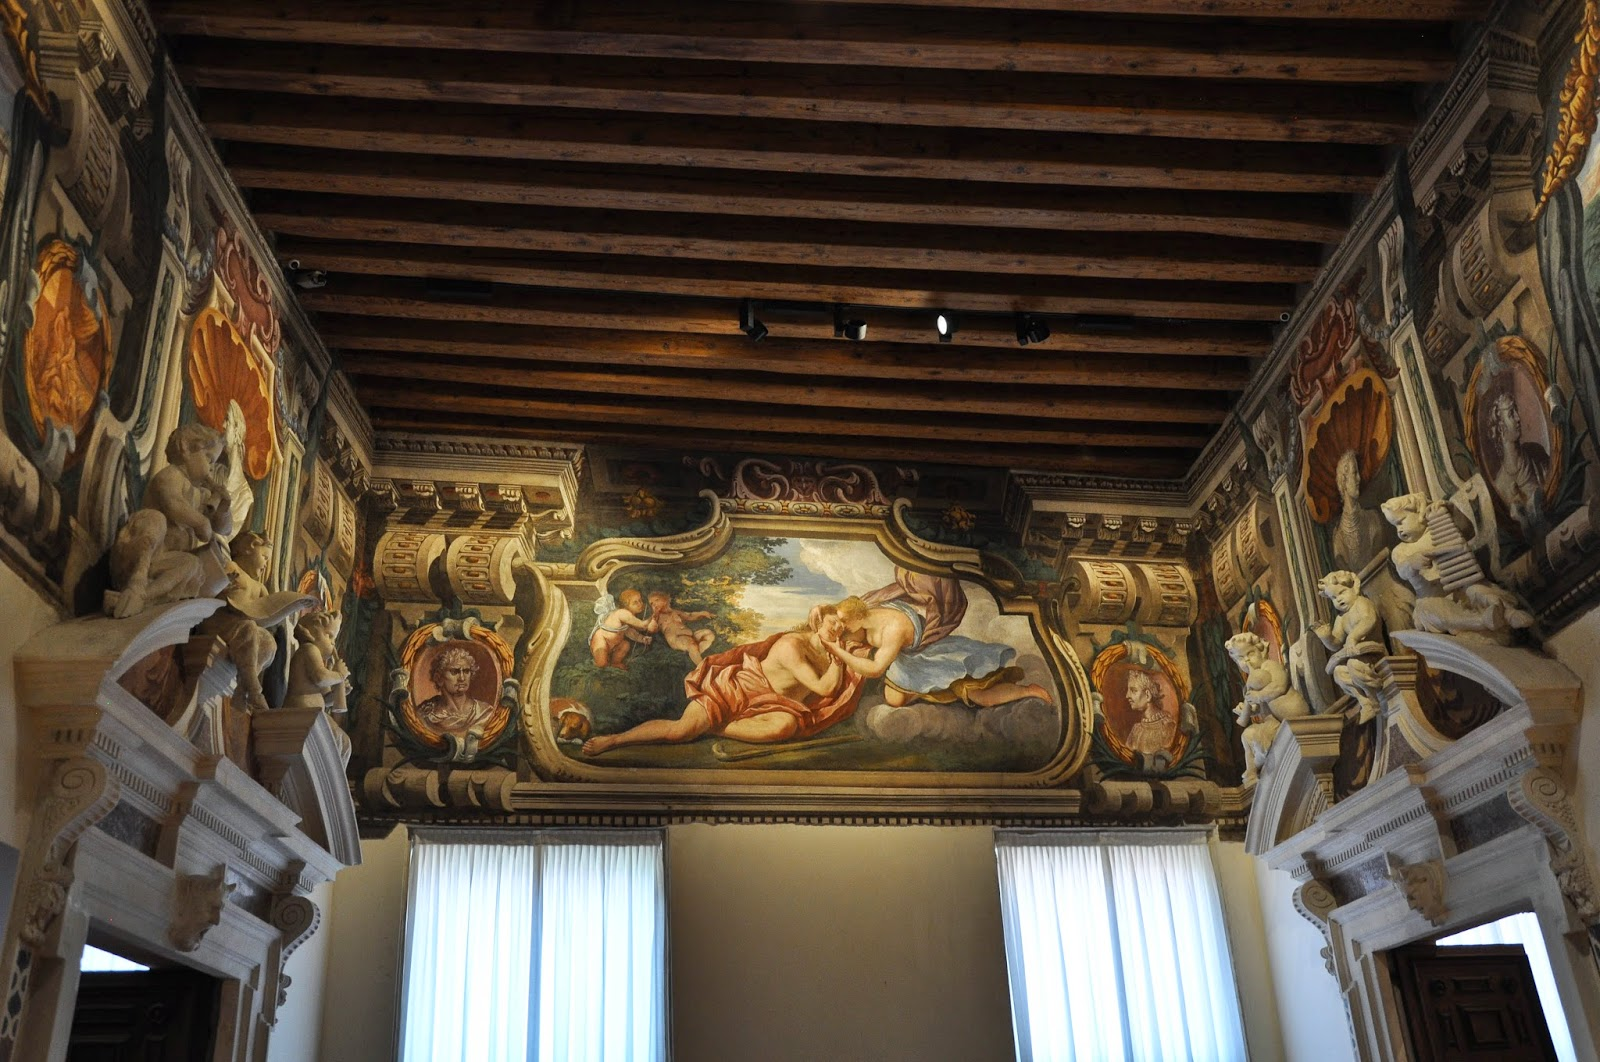 Frescoes and ornamentation, Gallerie D'Italia in Palazzo Leoni Montanari, Vicenza, Italy